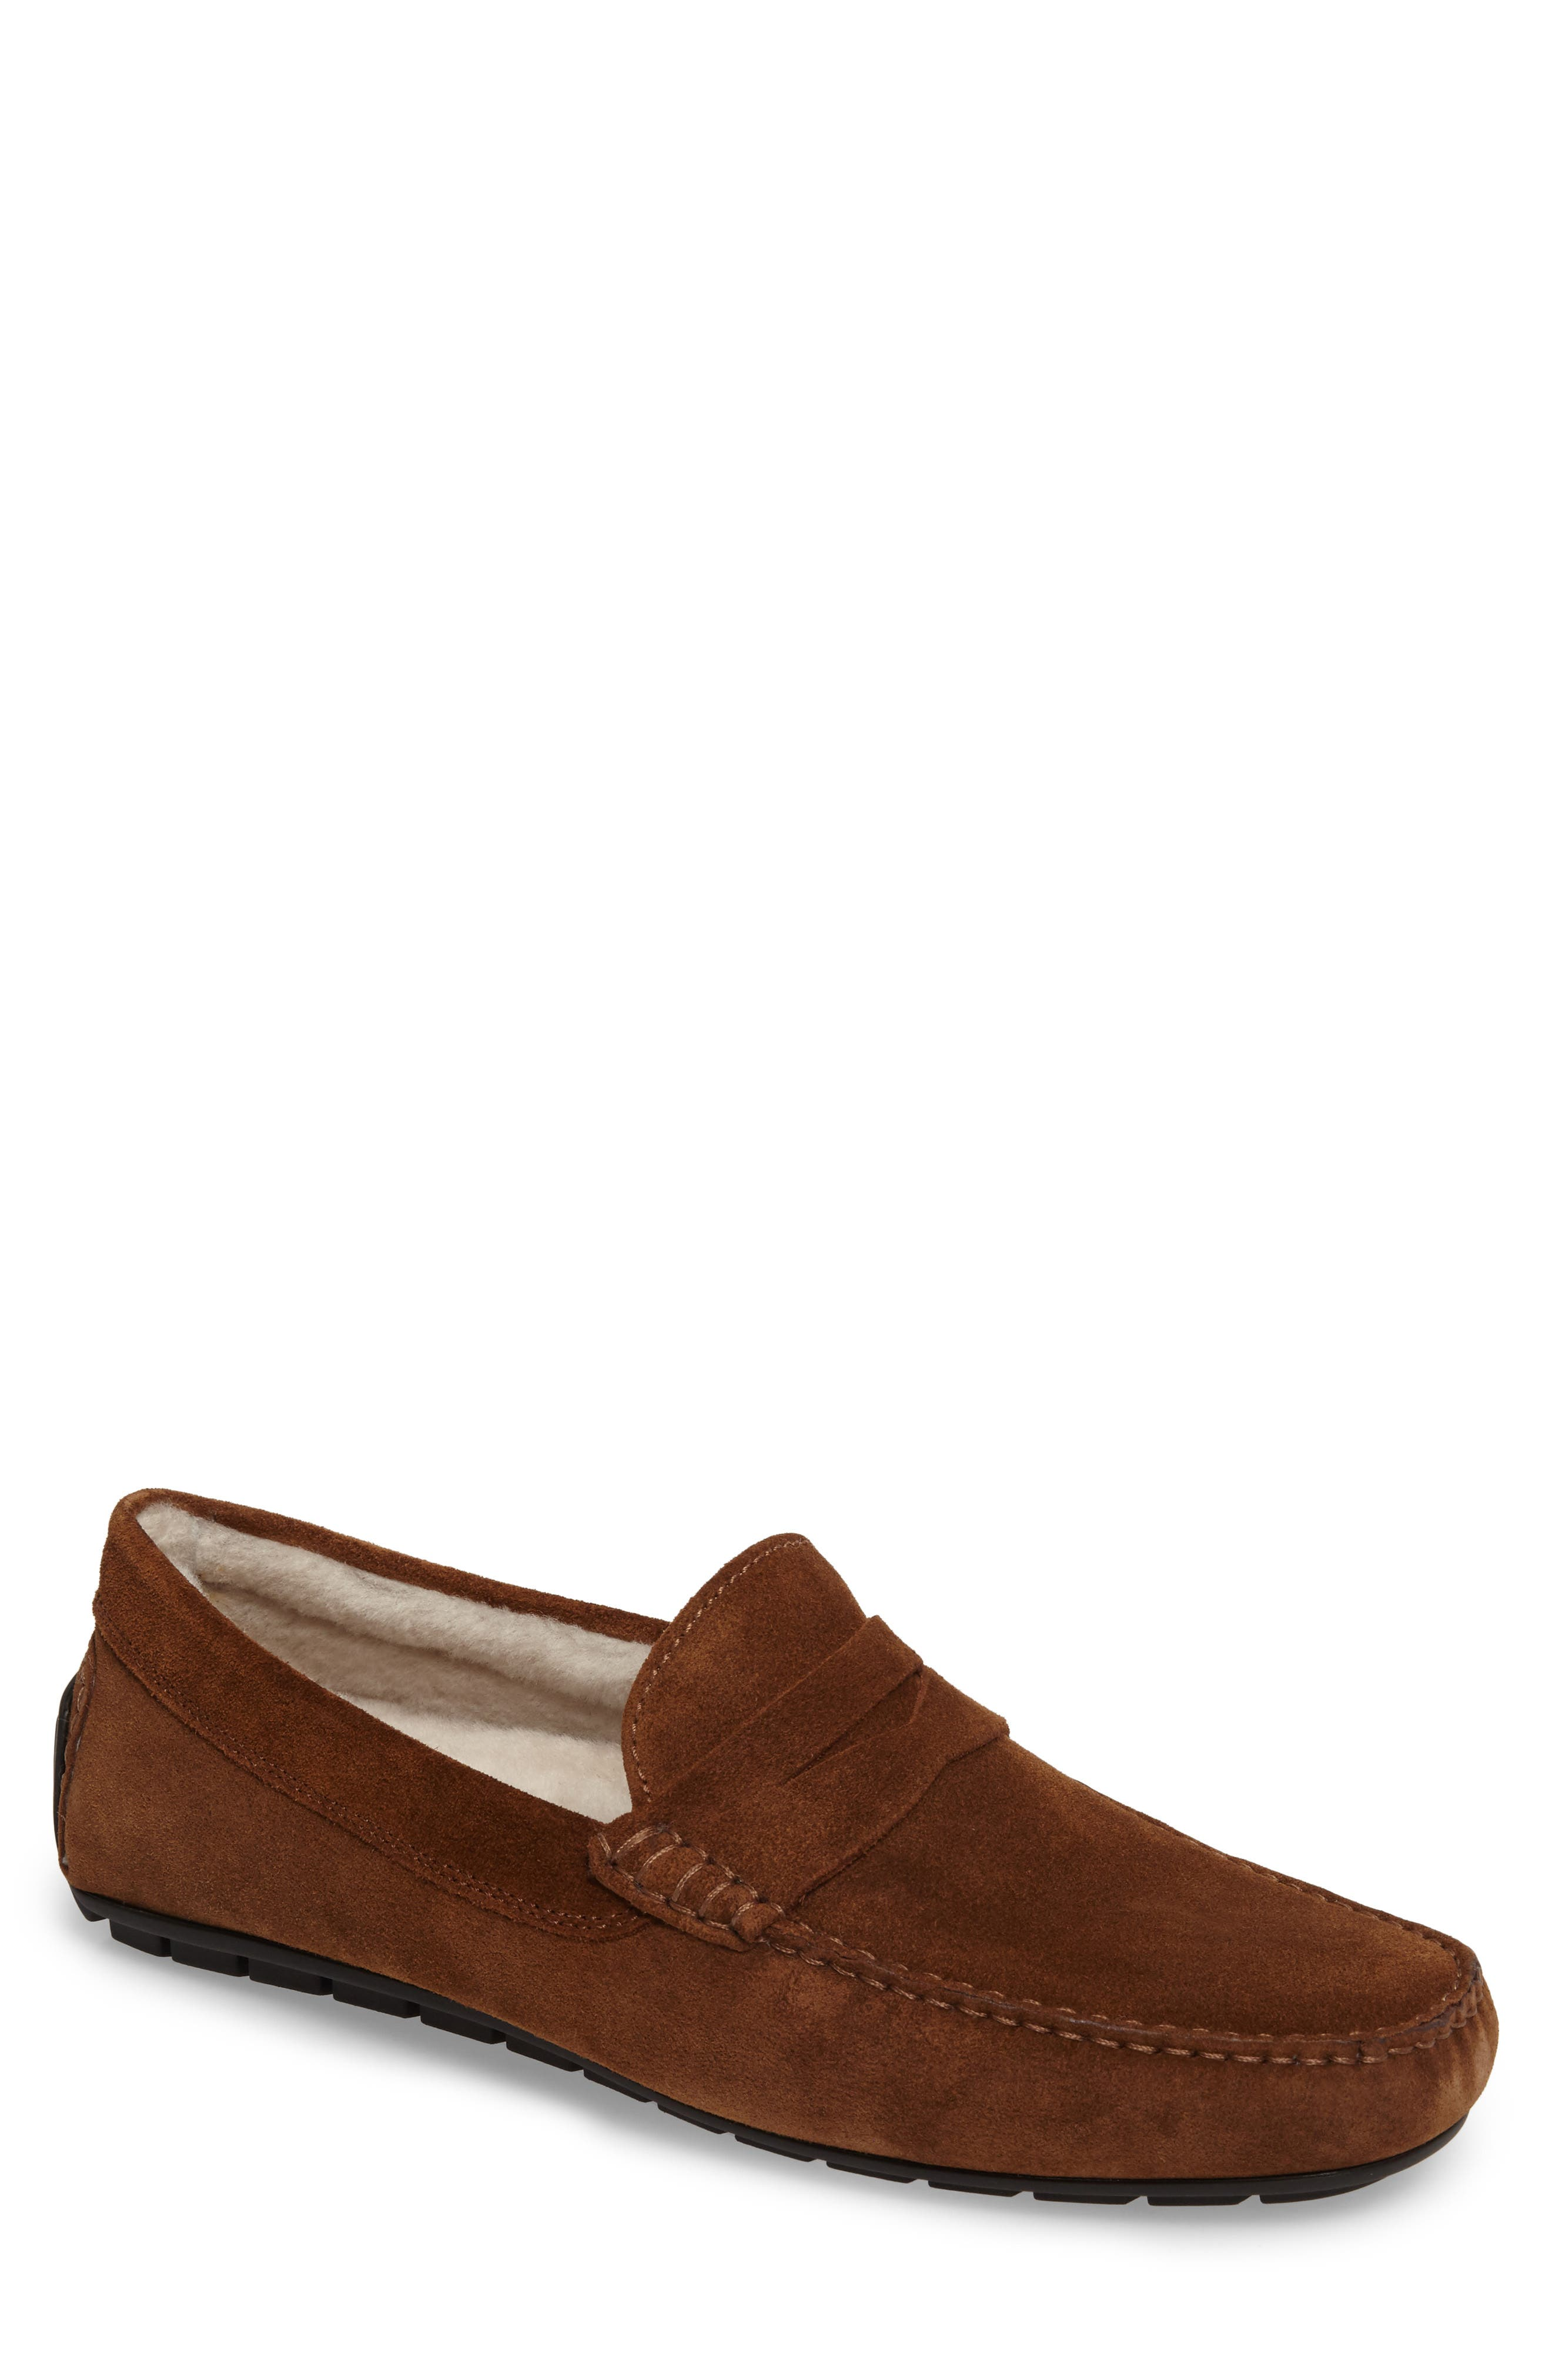 Norse Penny Loafer with Genuine Shearling,                         Main,                         color, Brown/ Brown Suede Leather